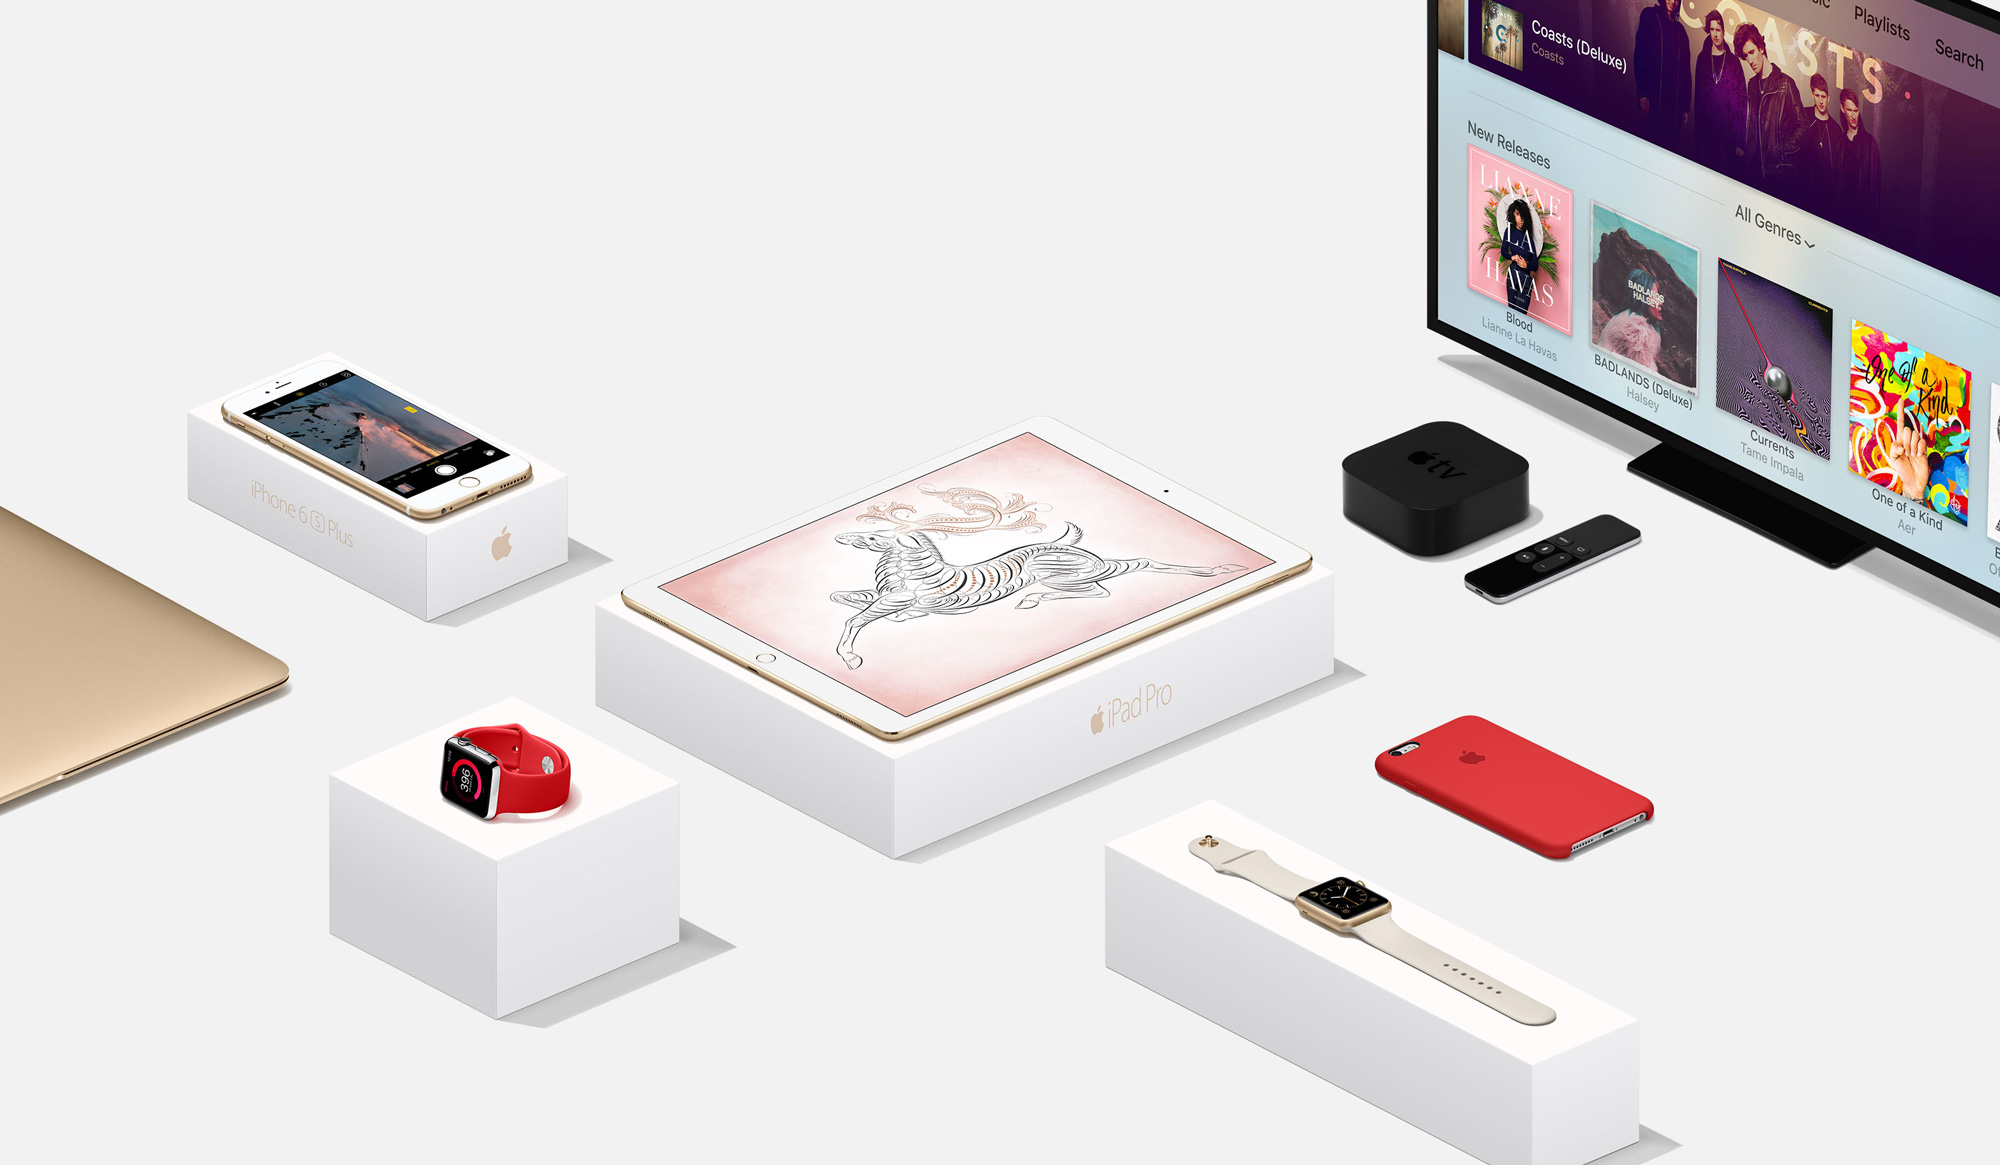 apple 2015 christmas gift guide - Best Christmas Gift 2015